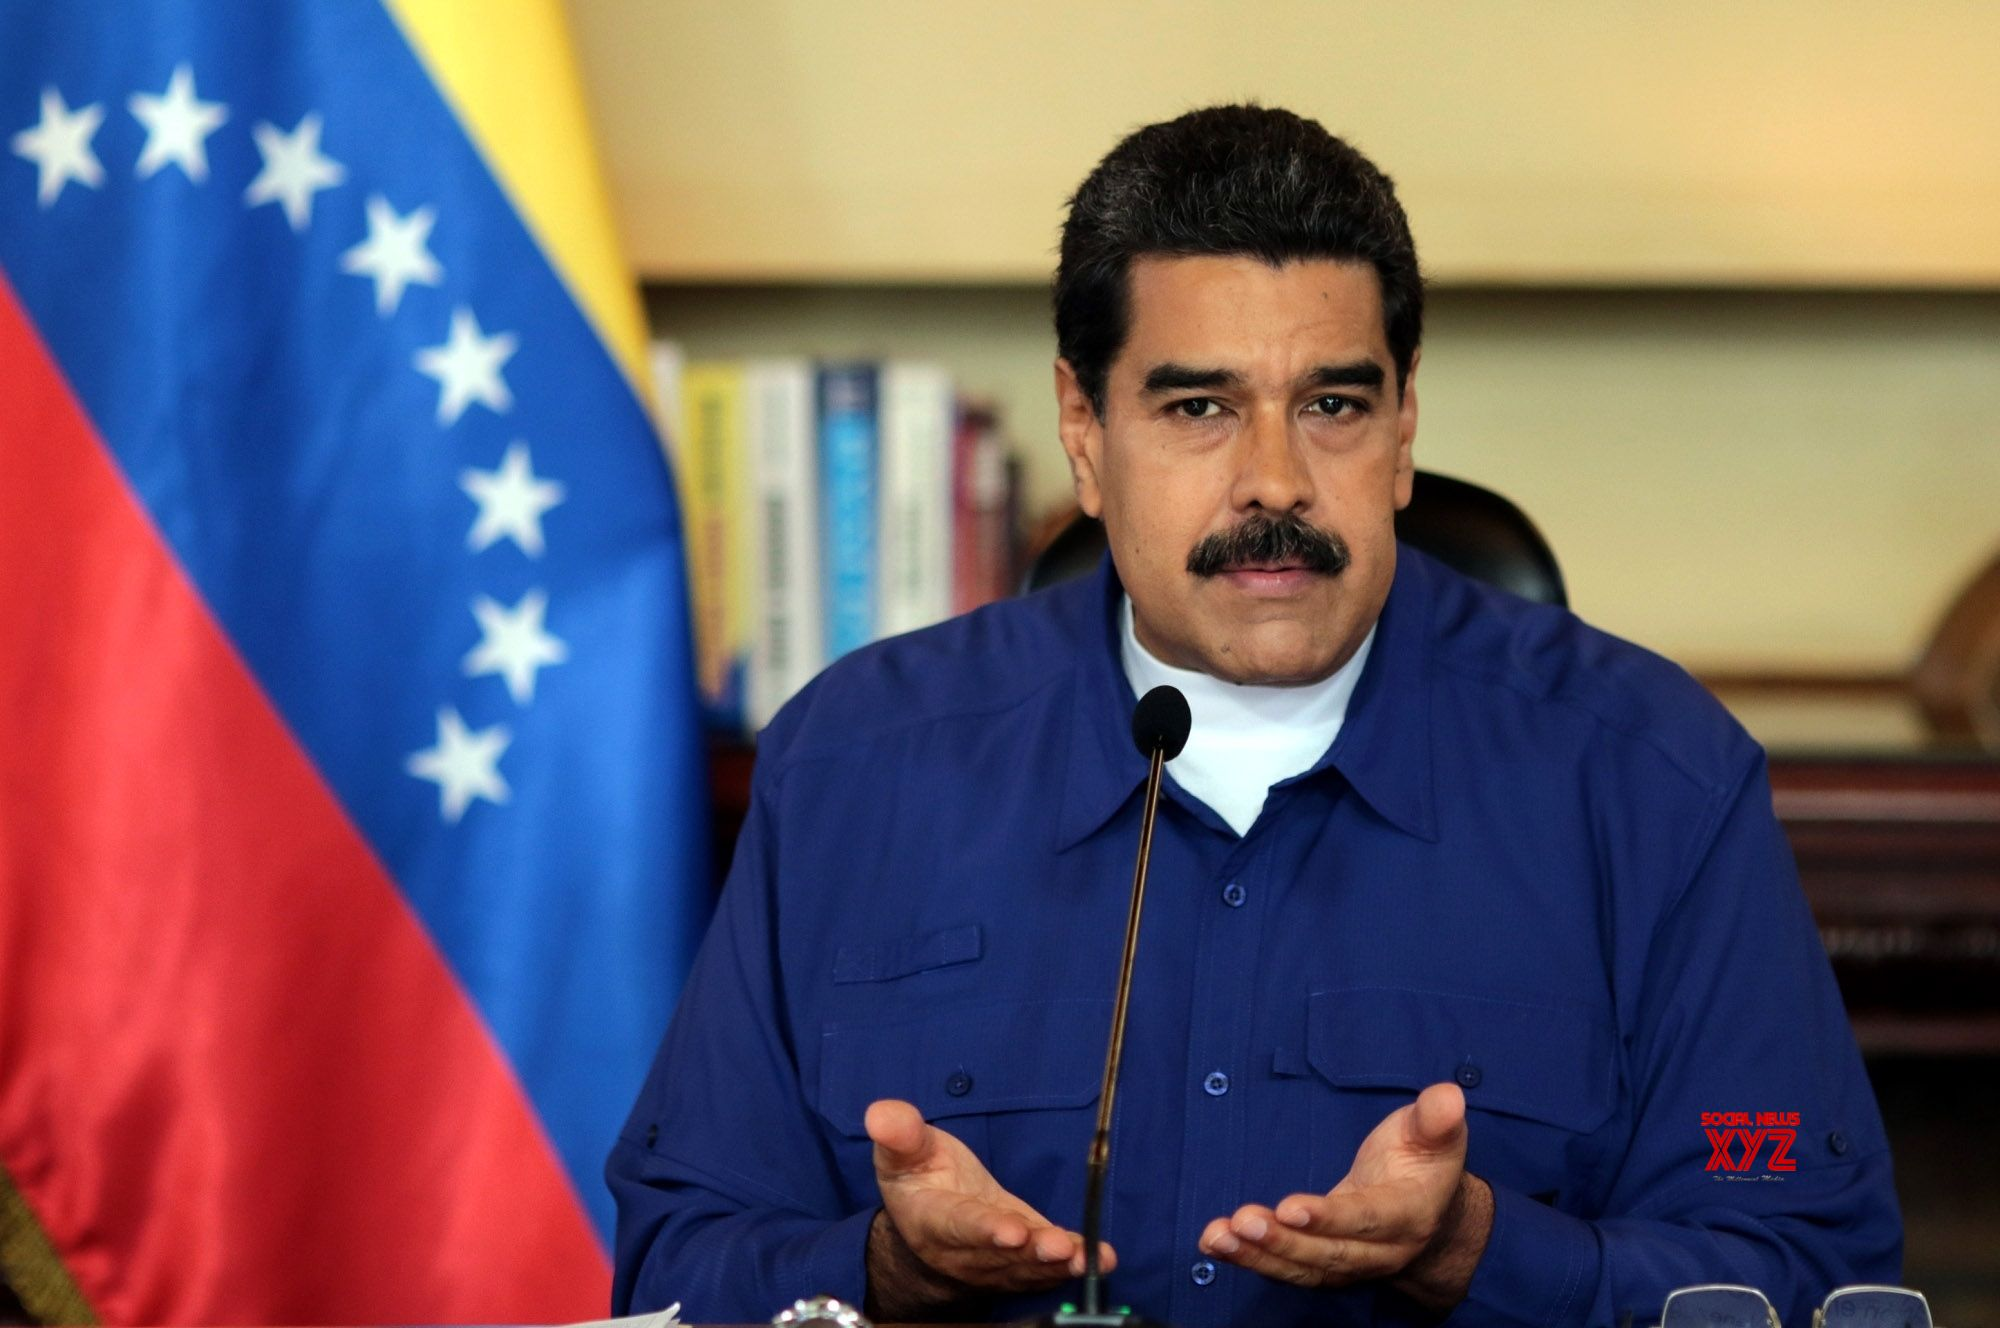 China, Venezuela sign deals on oil, mining, security